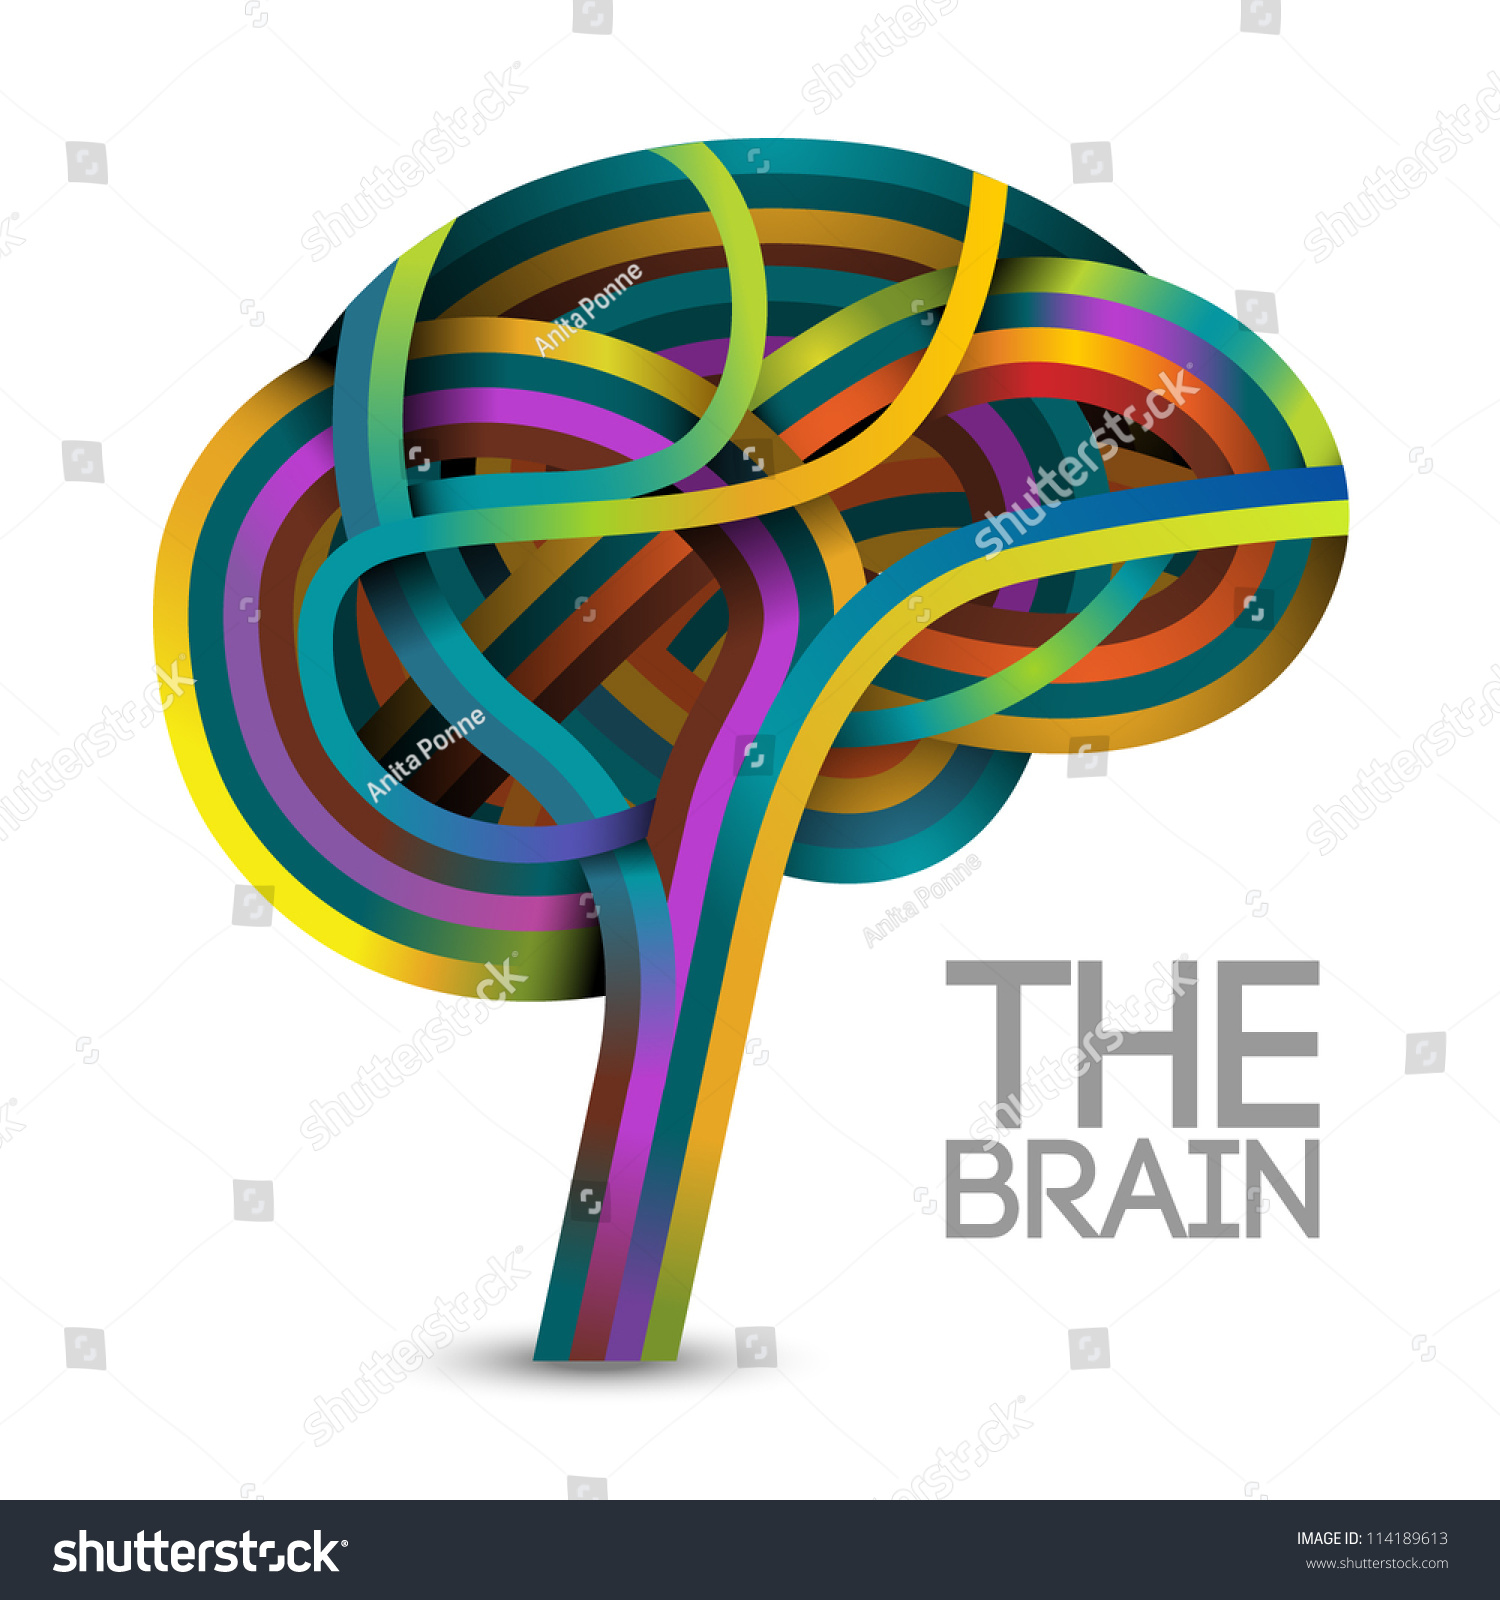 online image   photo editor shutterstock editor brain vector free download brain vector icon